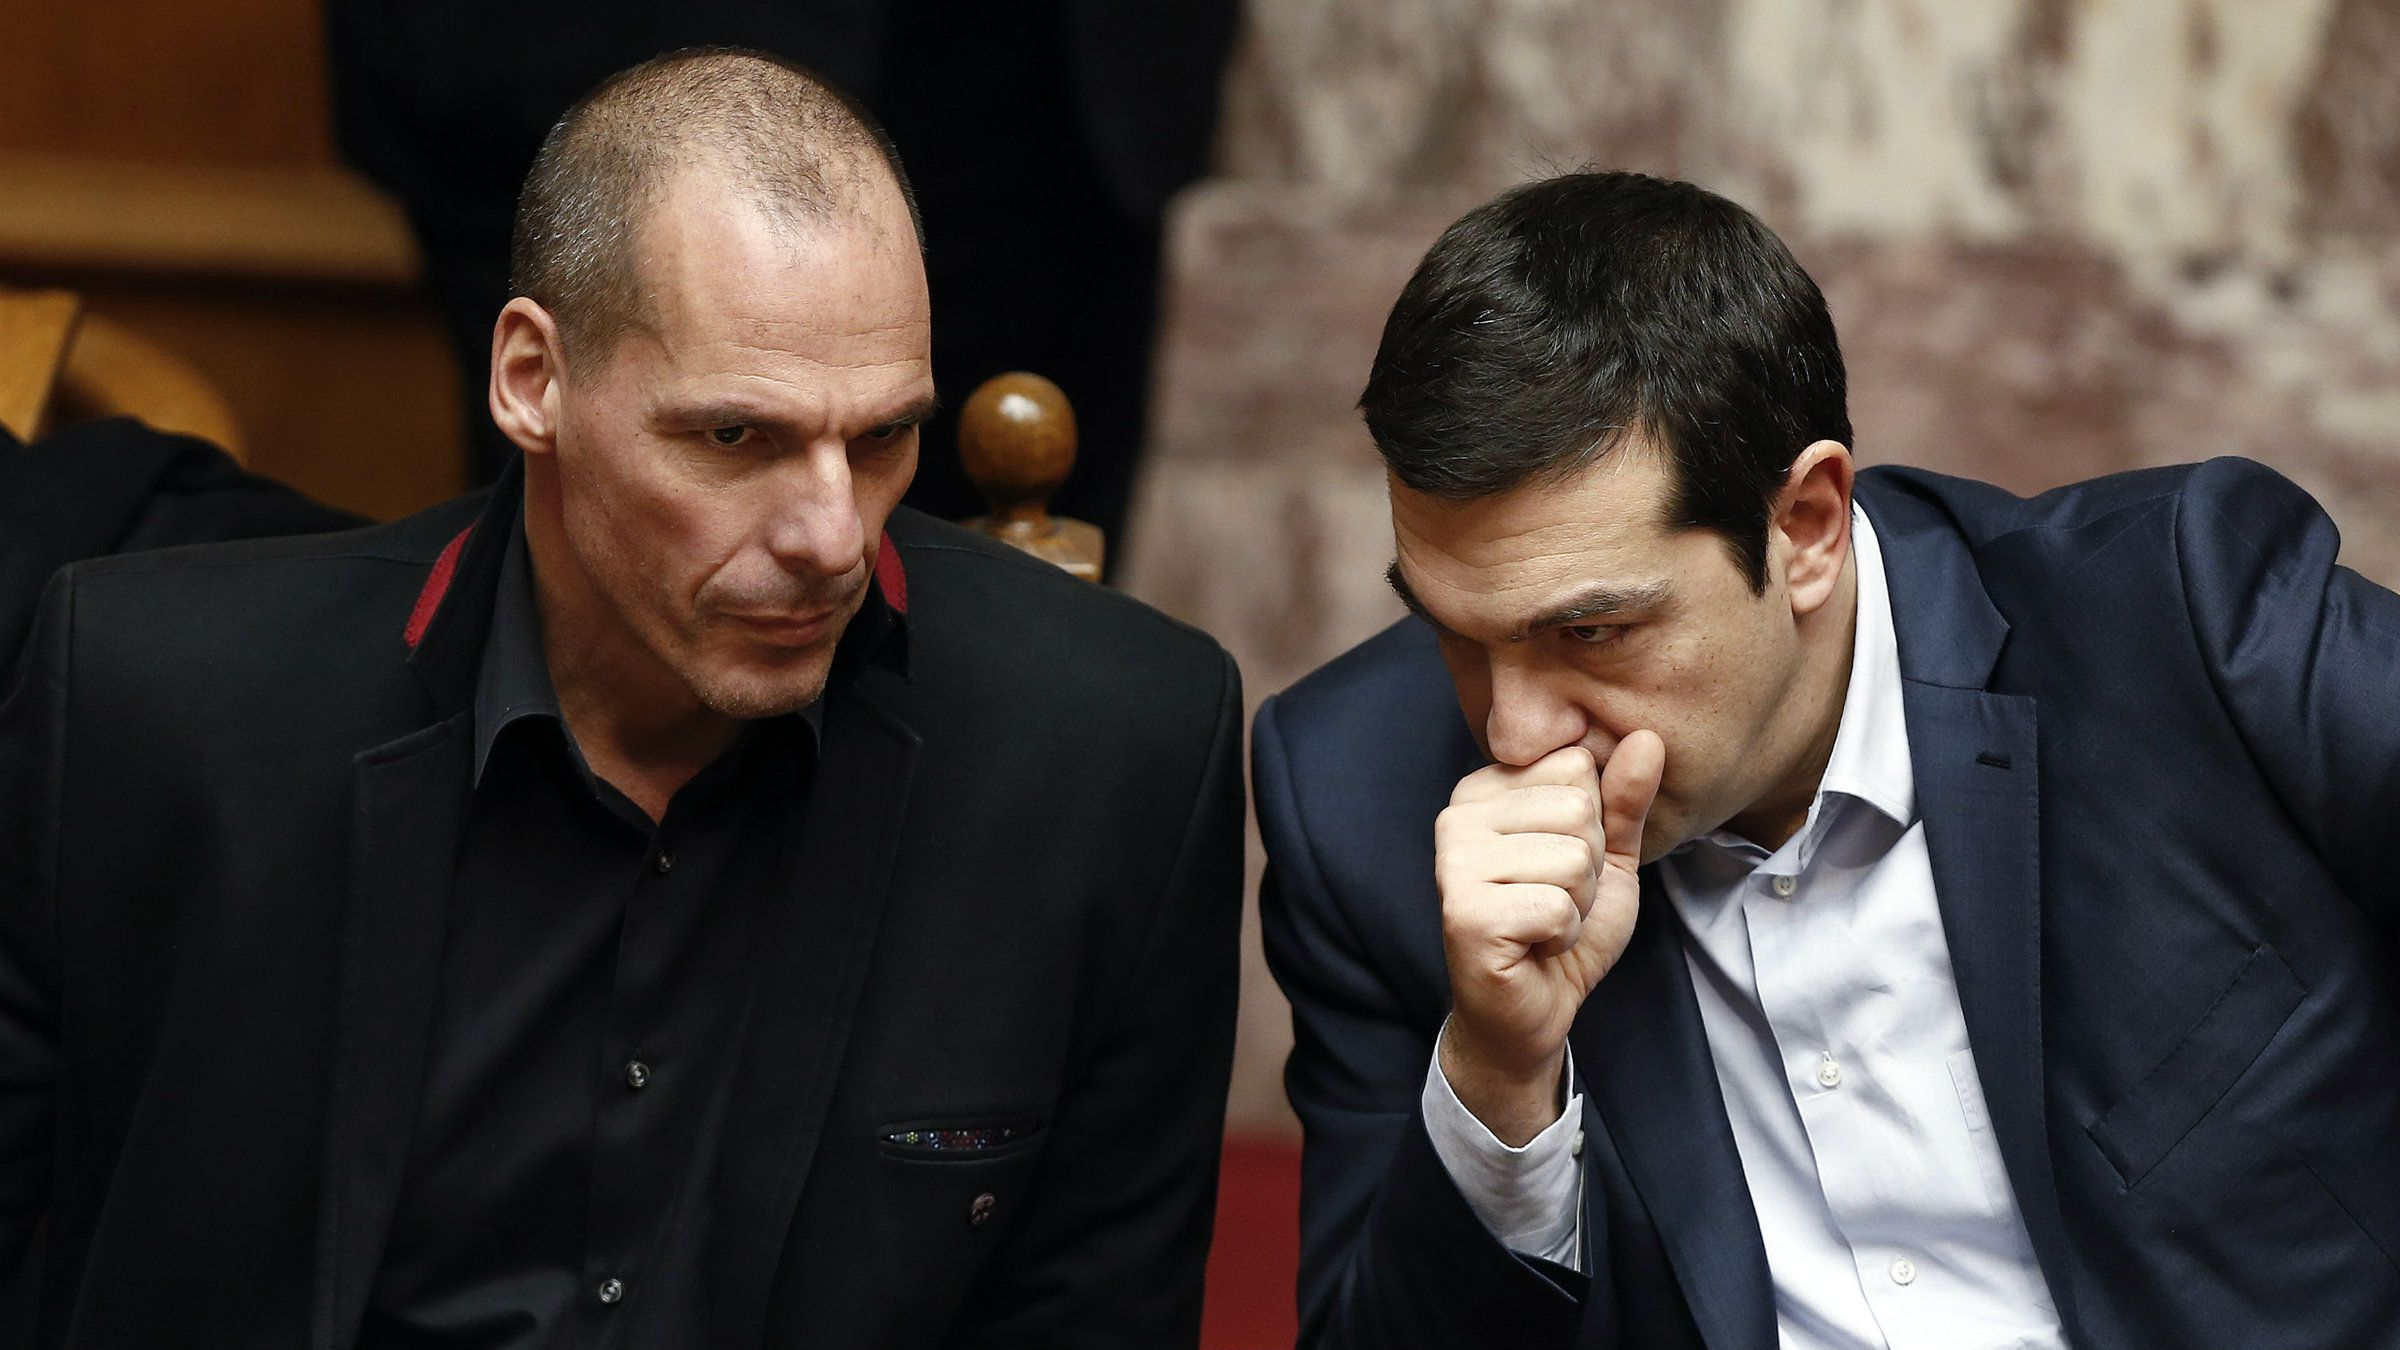 Greek Prime Minister Alexis Tsipras (R) and Finance Minister Yanis Varoufakis at the parliament in Athens.